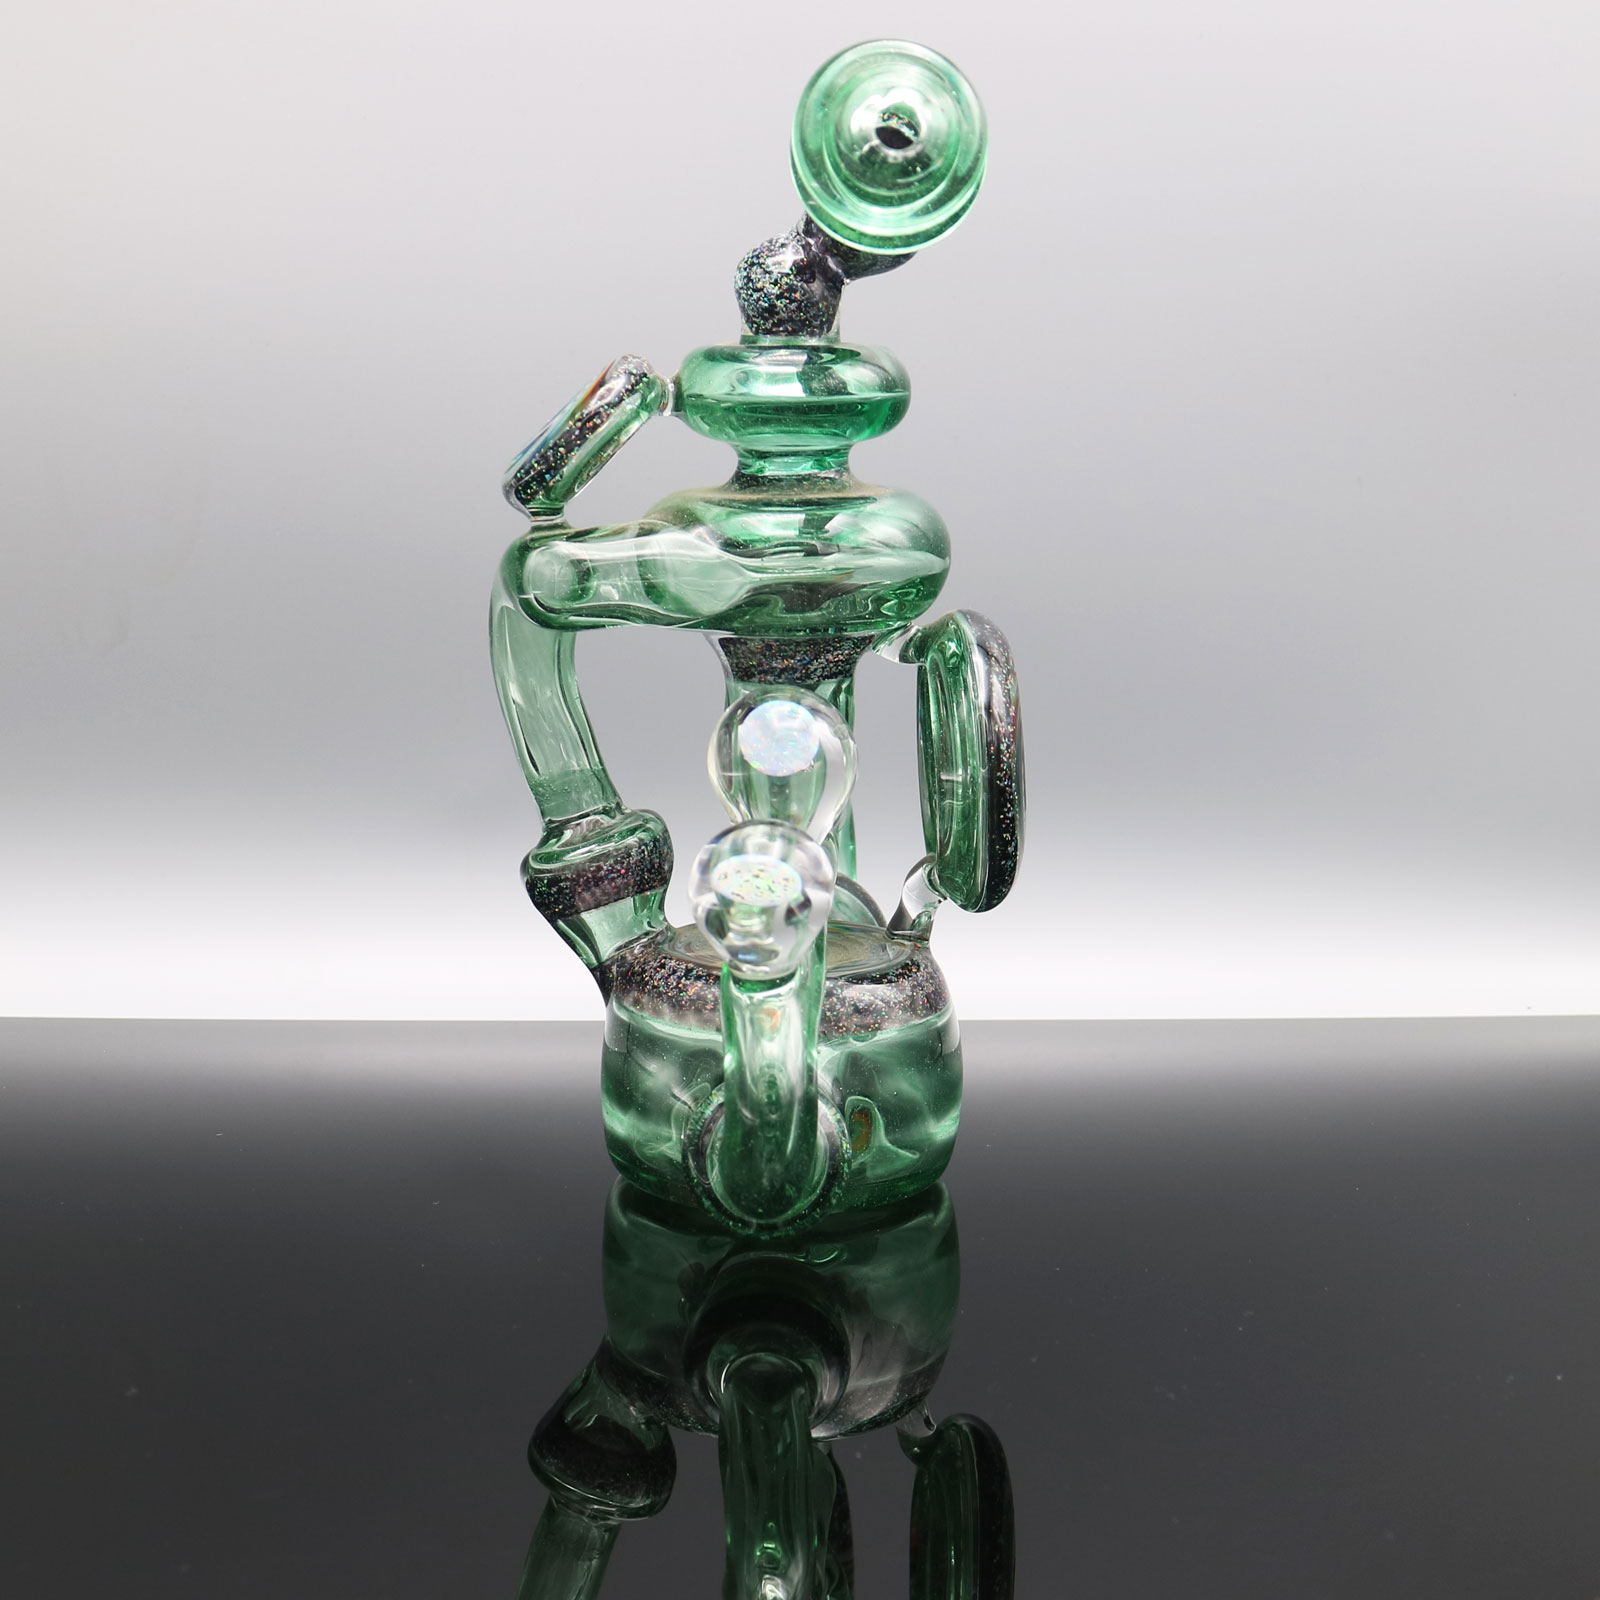 Chappell Glass – Green Stardust Crushed Opal Recycler